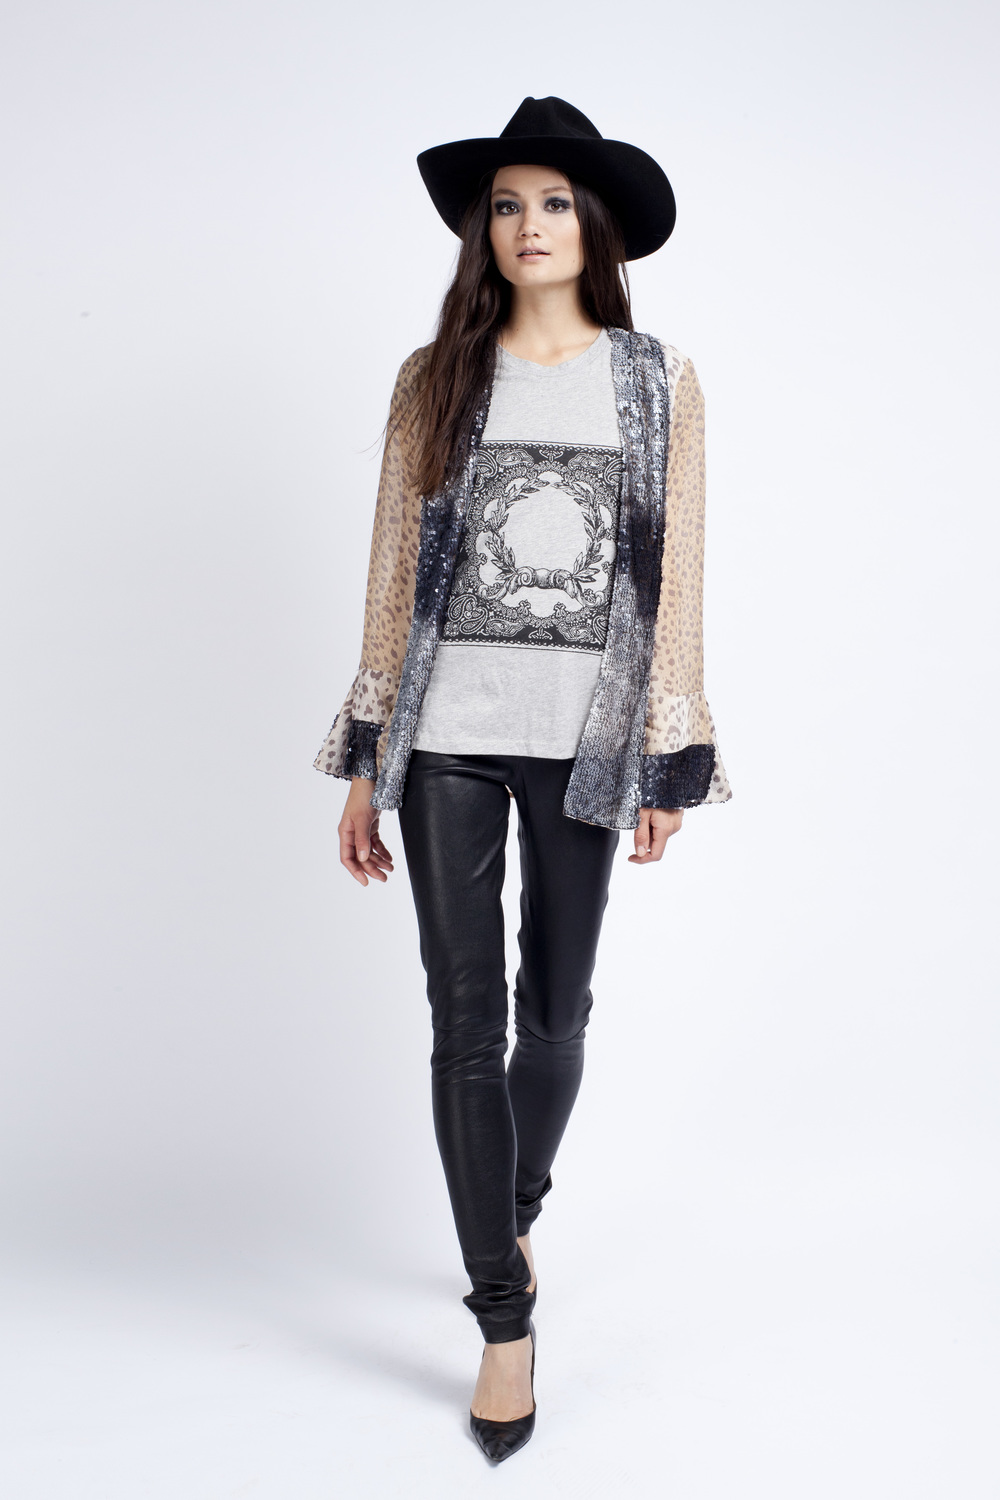 Little Joe Woman __ Fine Tuned Leather Pant __ $999 __ www.littlejoeny.com.jpg